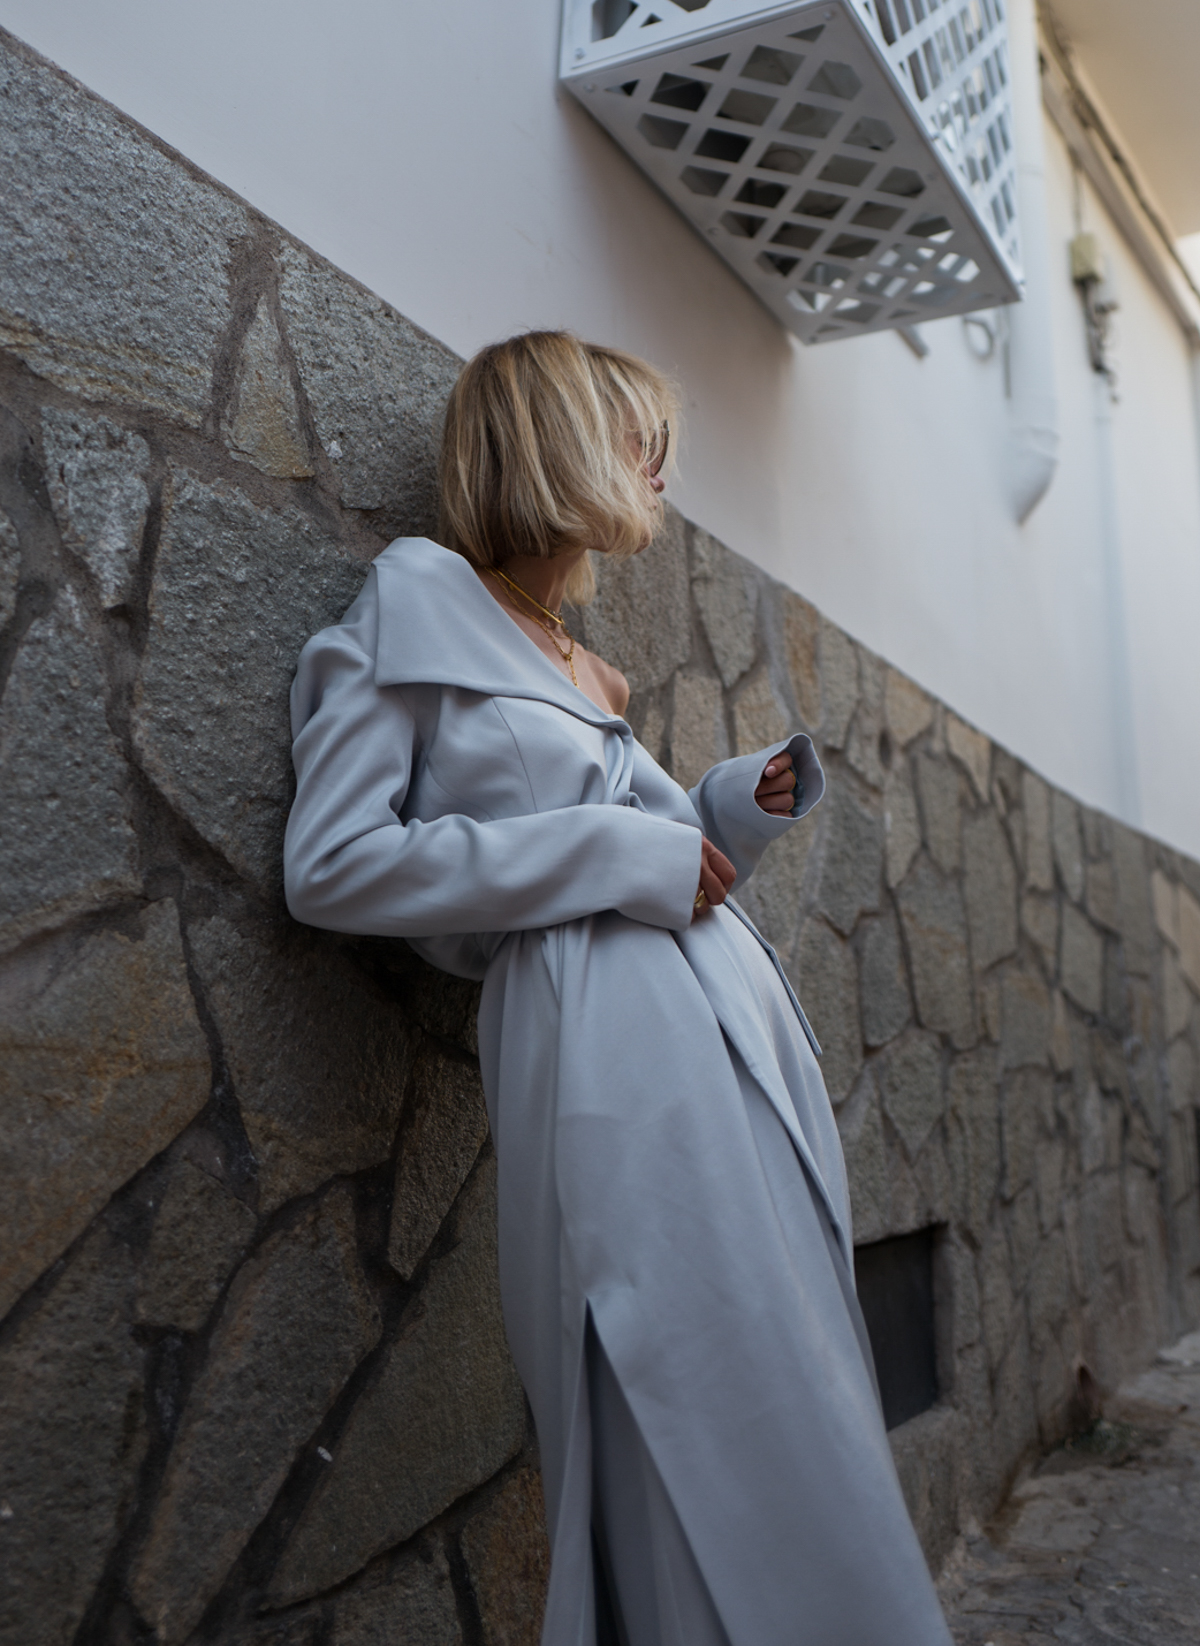 Max&Co. Light Grey Duster Coat Palazzo Trousers Lisa Hahnbück Fashion Blog